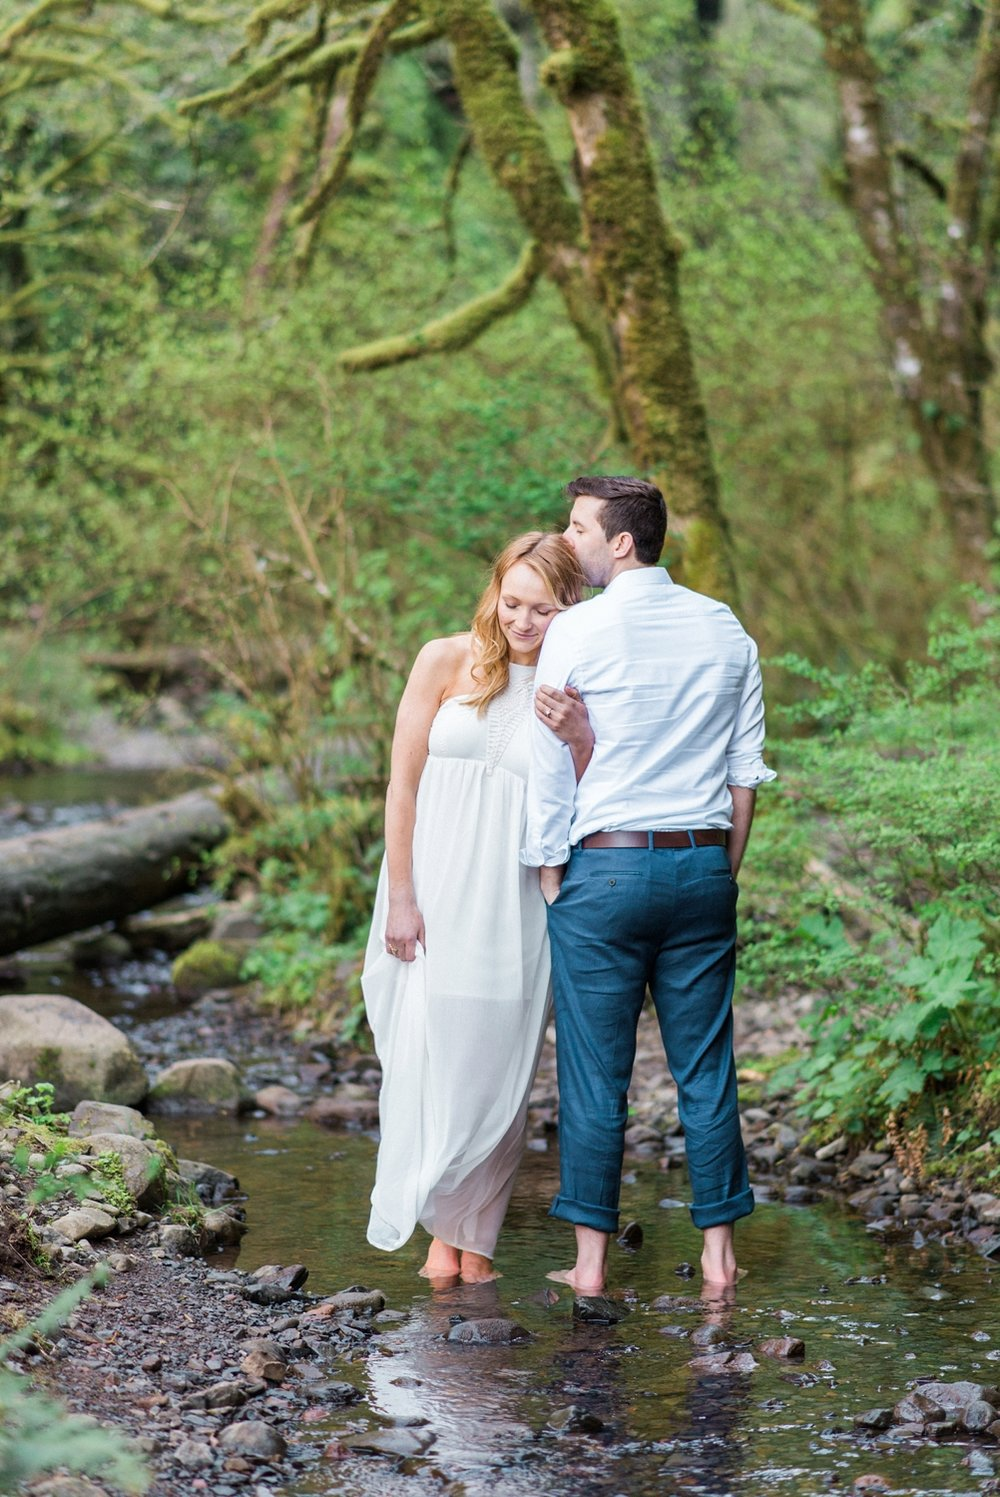 portland-engagement-columbia-river-gorge-oneonta-latourell-waterfall-shelley-marie-photo-166_cr.jpg